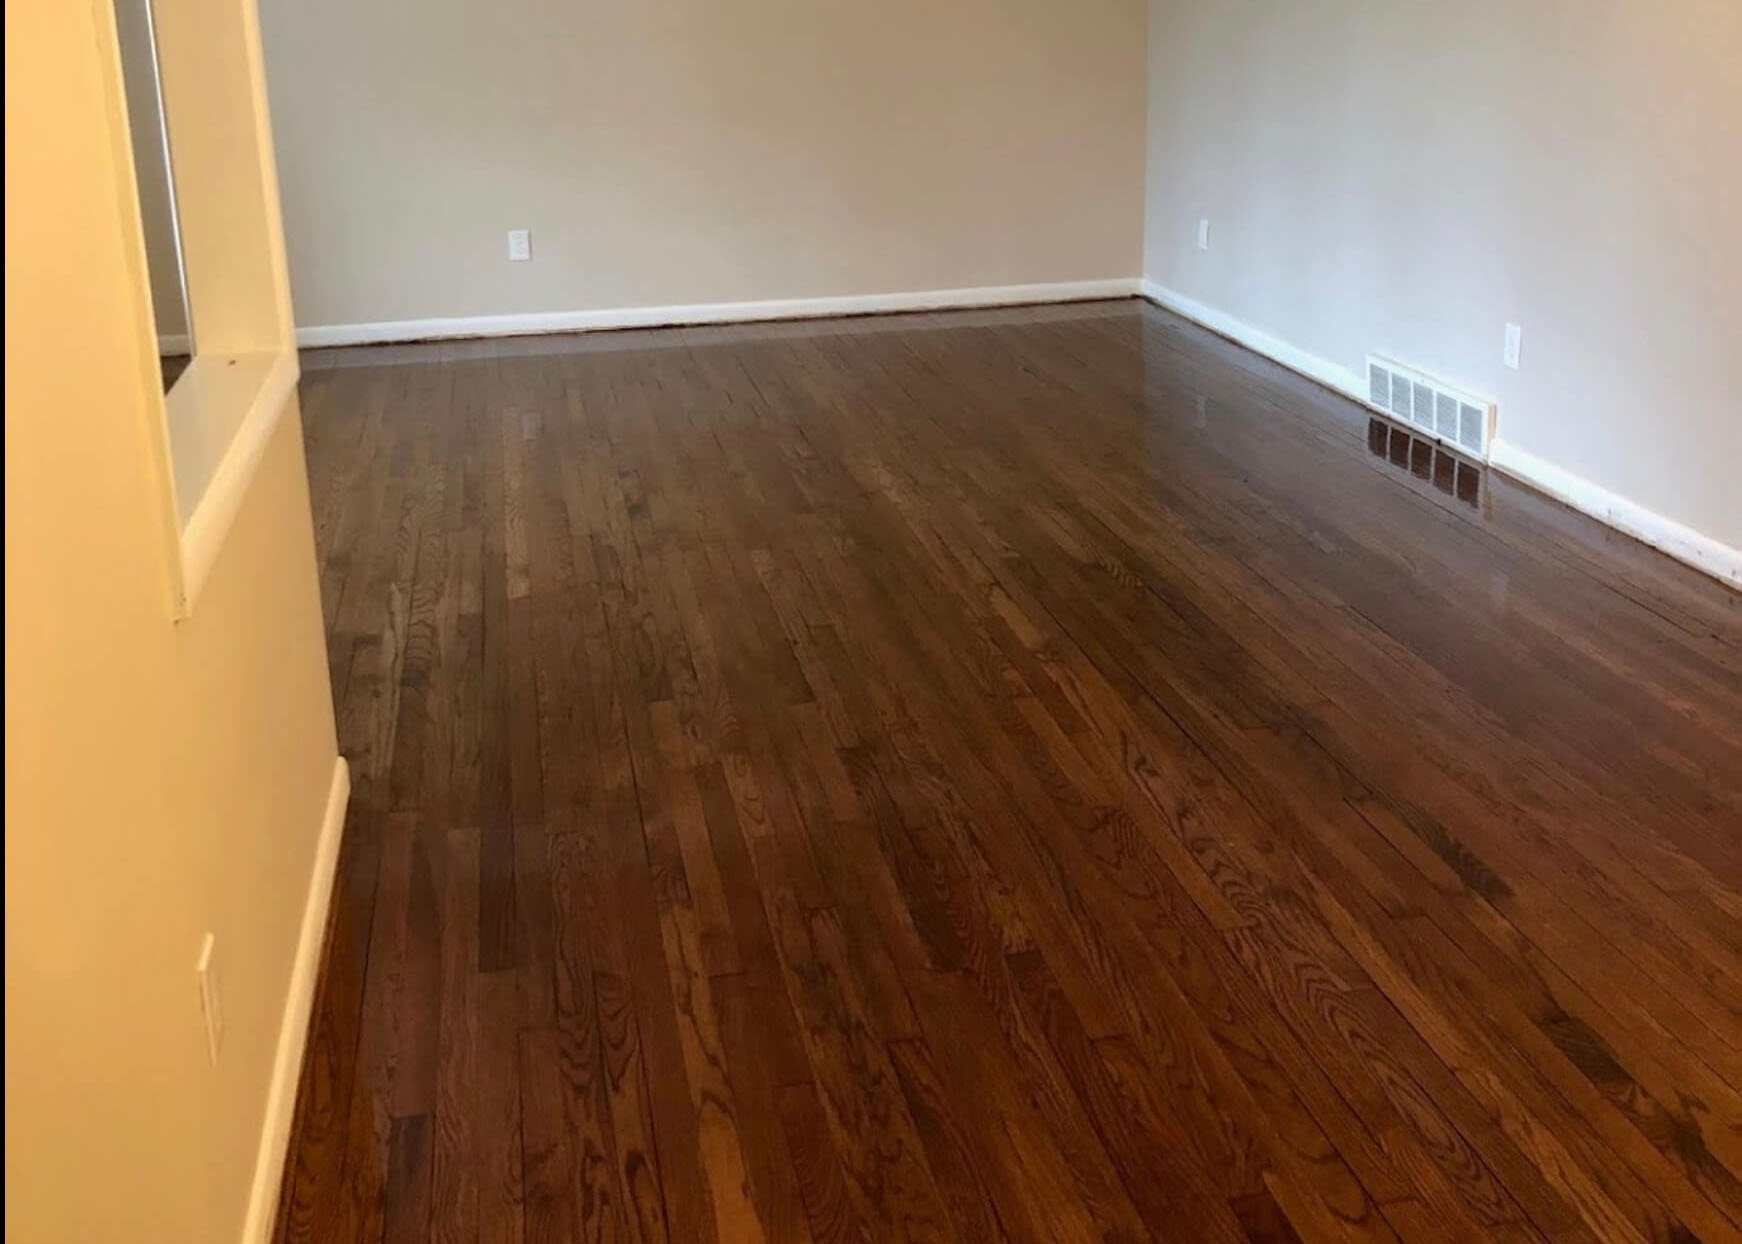 Freshly repaired and refinished hardwood floor